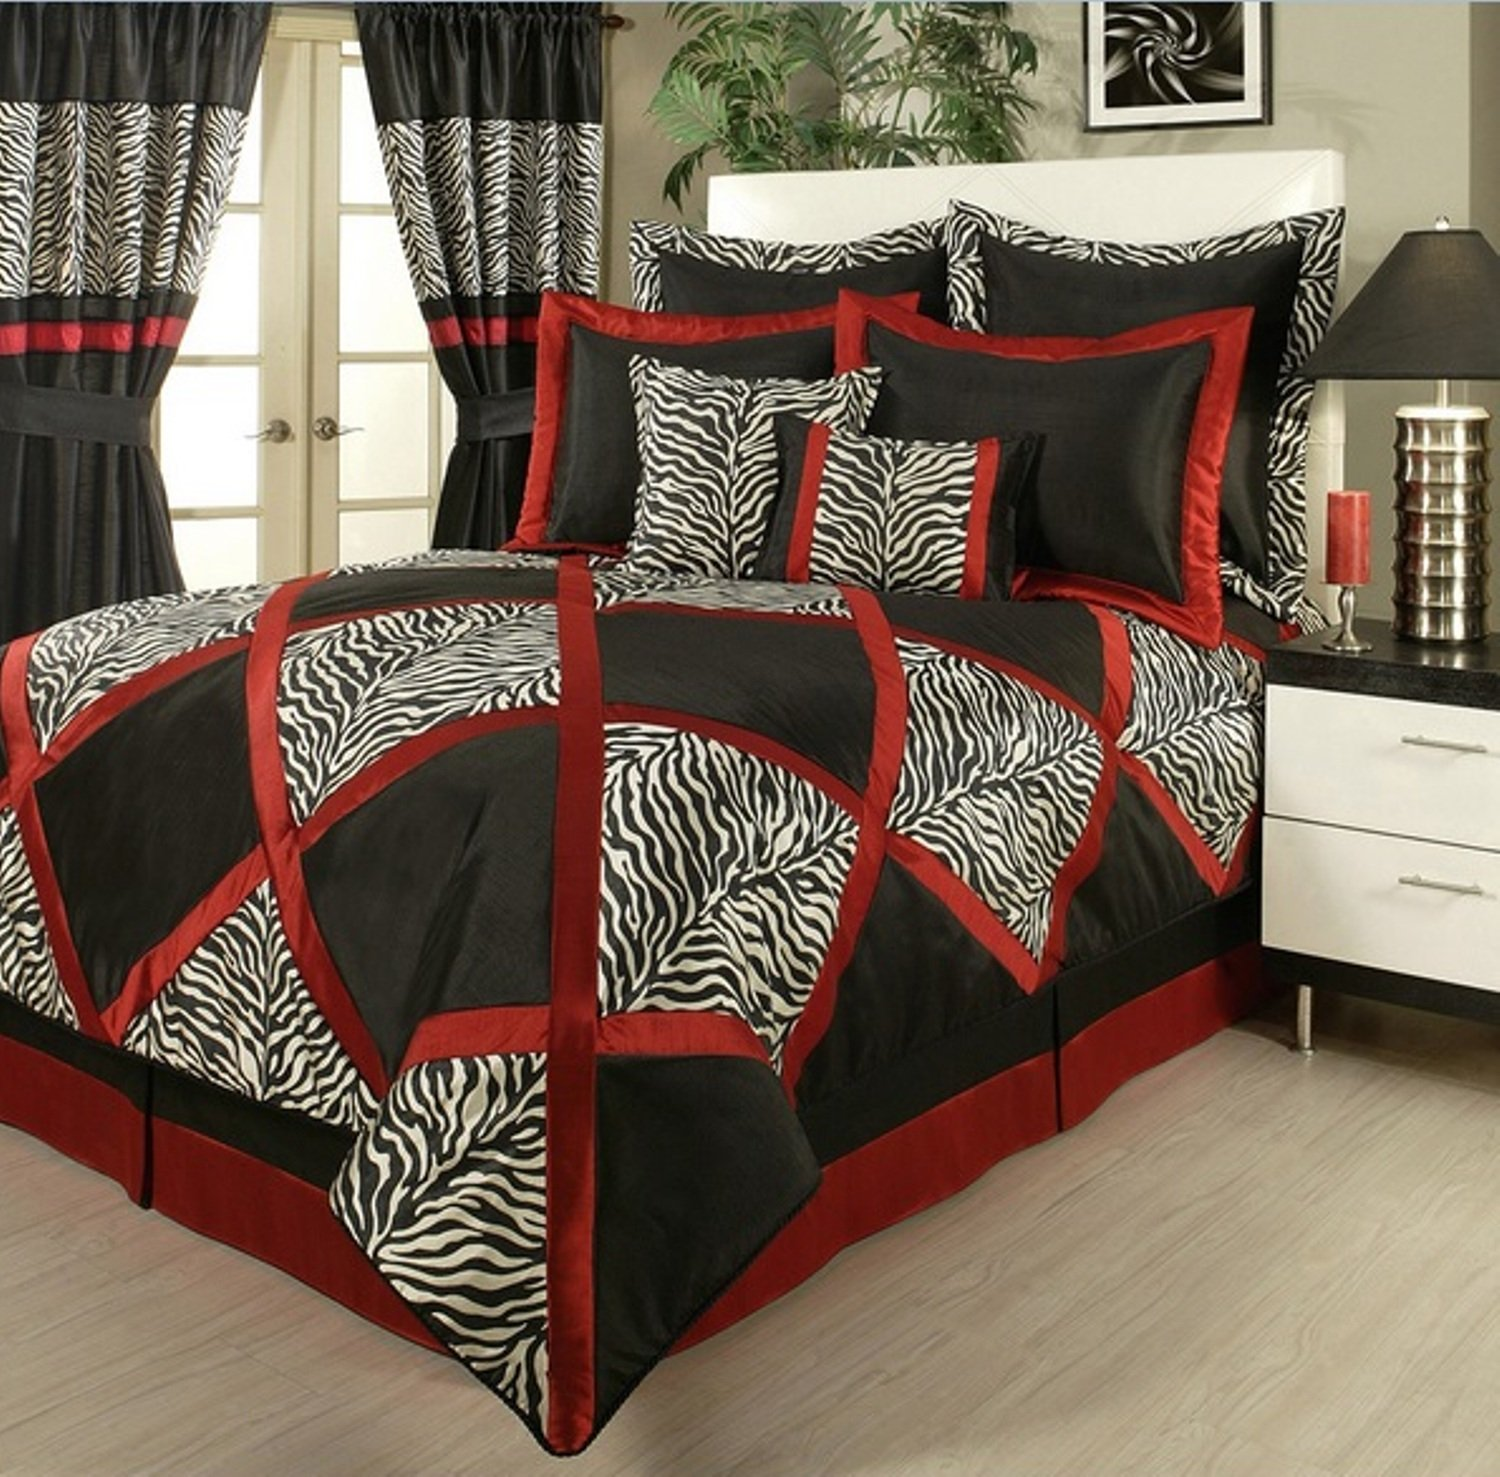 4 Piece Unique Zebra Pattern Comforter Set Queen Size, Featuring Elegant Jacquard Animal Print Design Comfortable Bedding, Stylish Modern Safari Theme Adult Bedroom Decoration, Red, Black, Multicolor